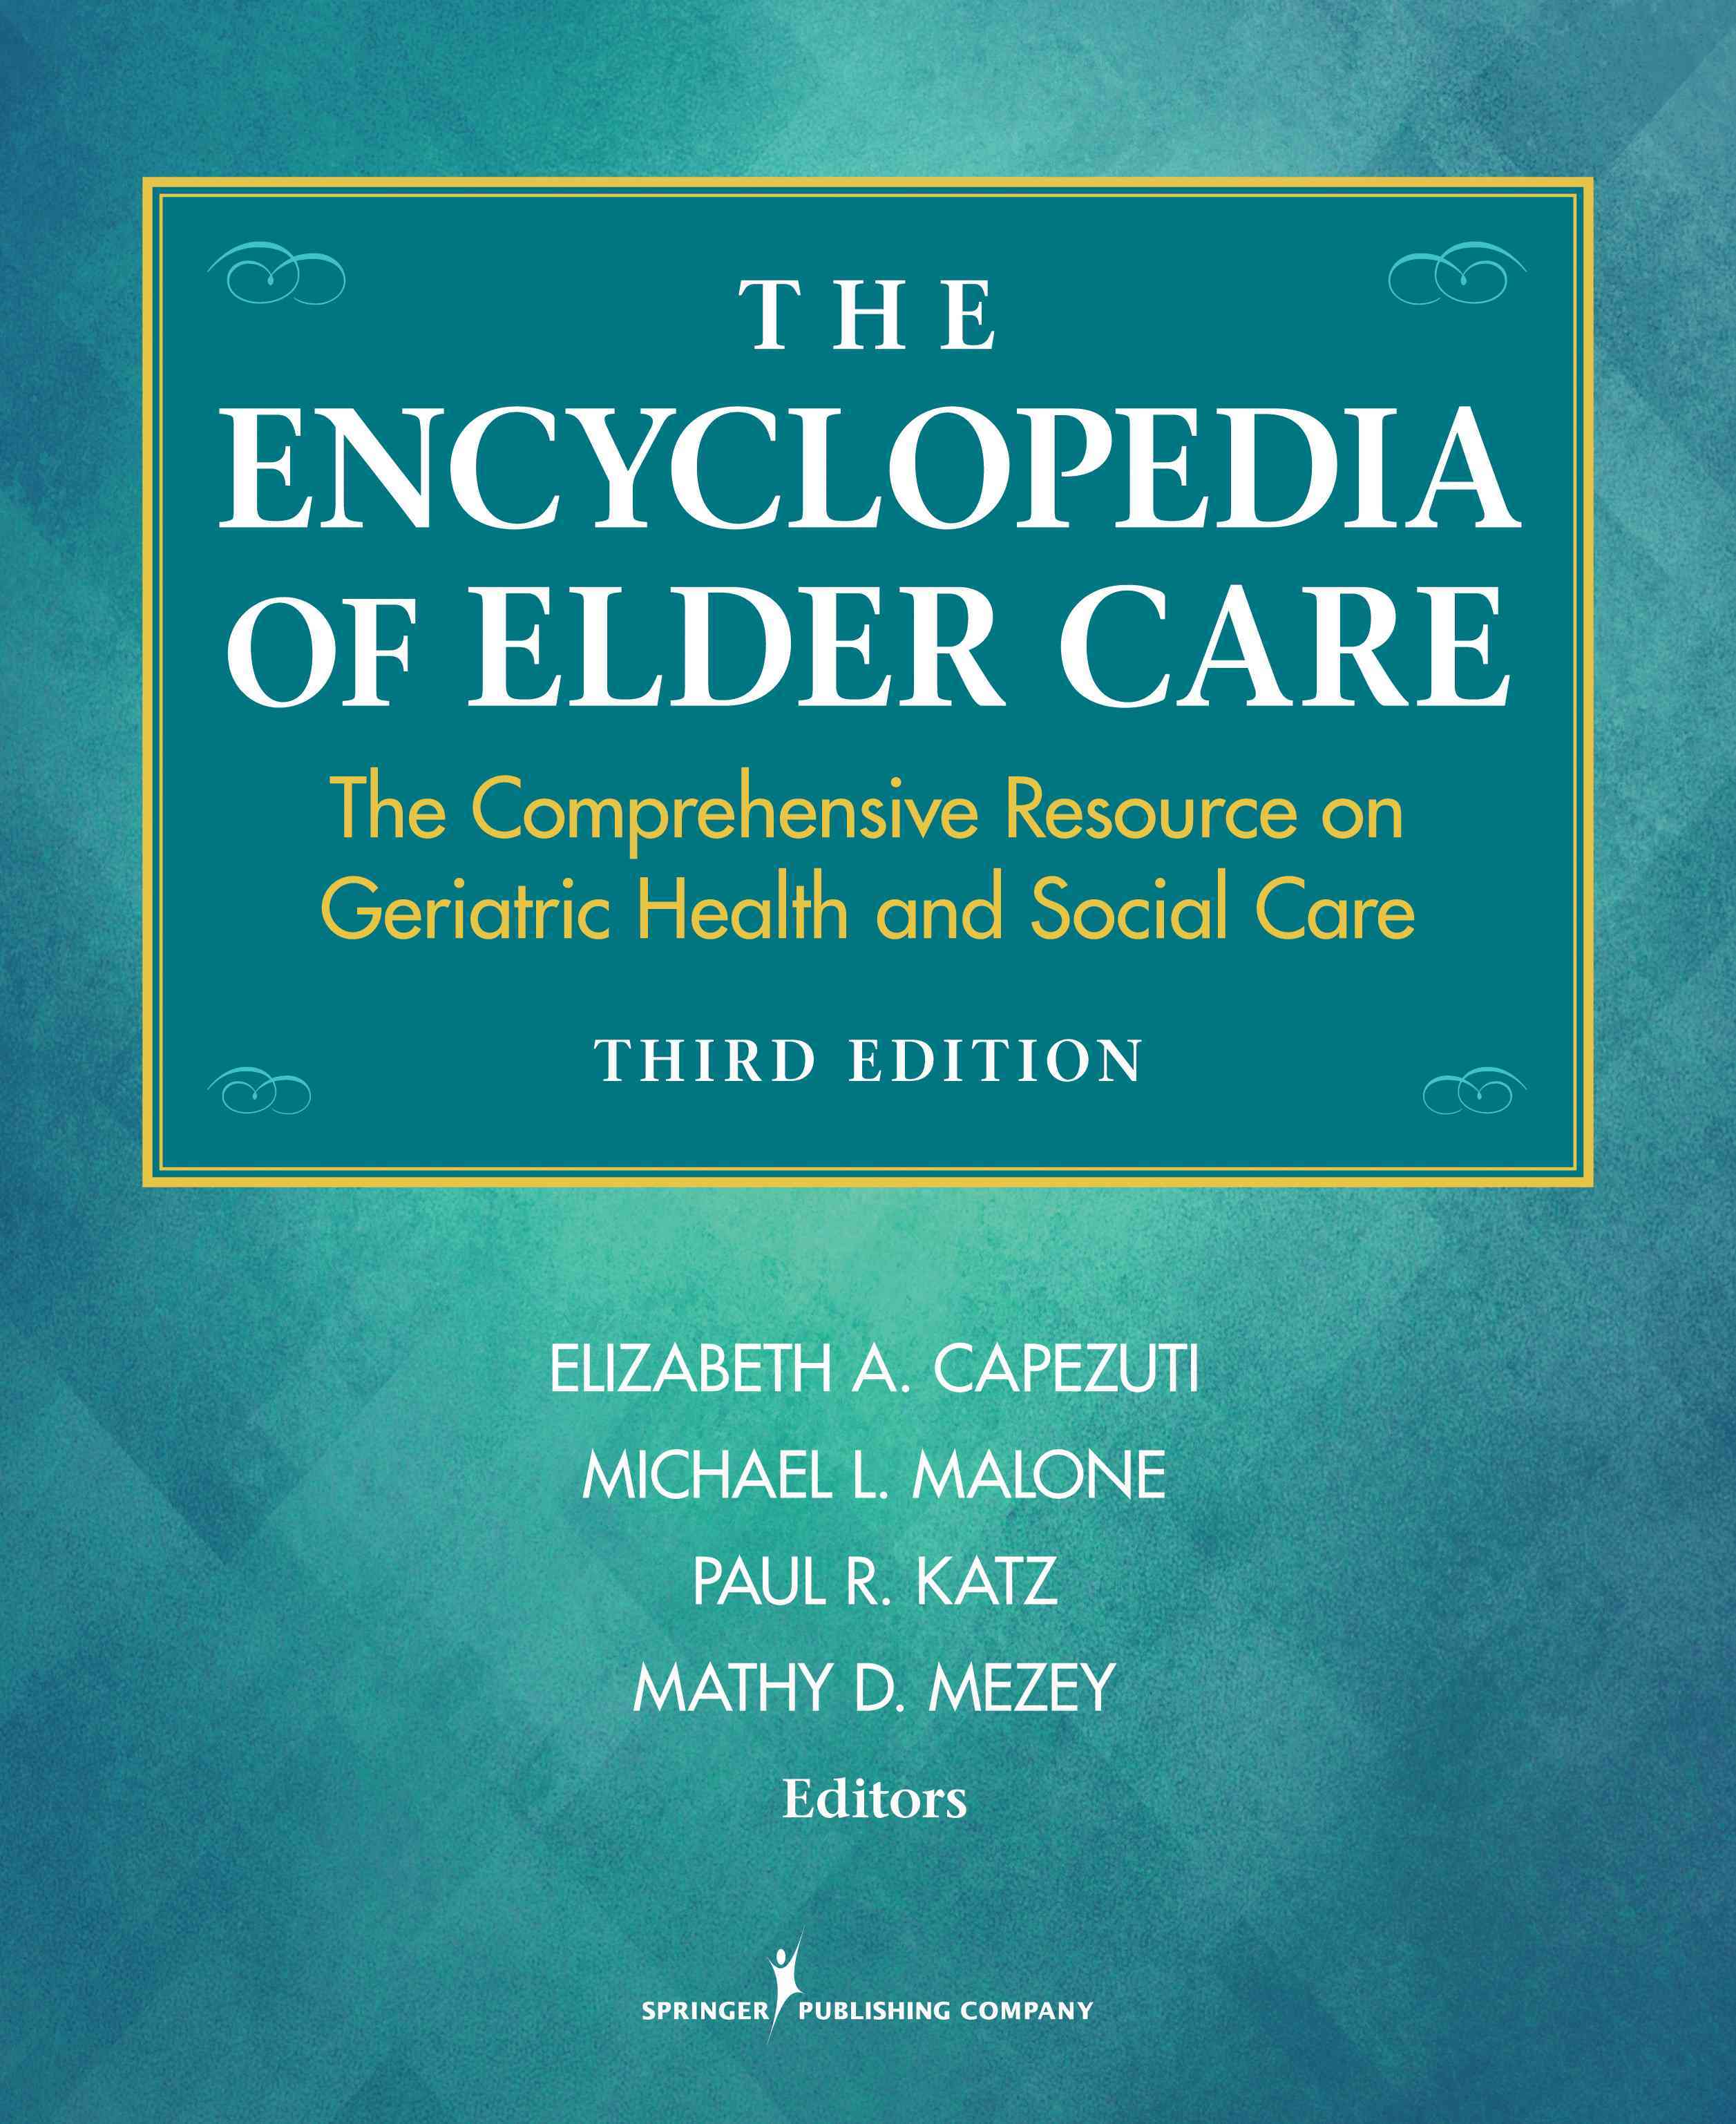 The Encyclopedia of Elder Care By Capezuti, Elizabeth A. (EDT)/ Malone, Michael L. (EDT)/ Katz, Paul R. (EDT)/ Mezey, Mathy (EDT)